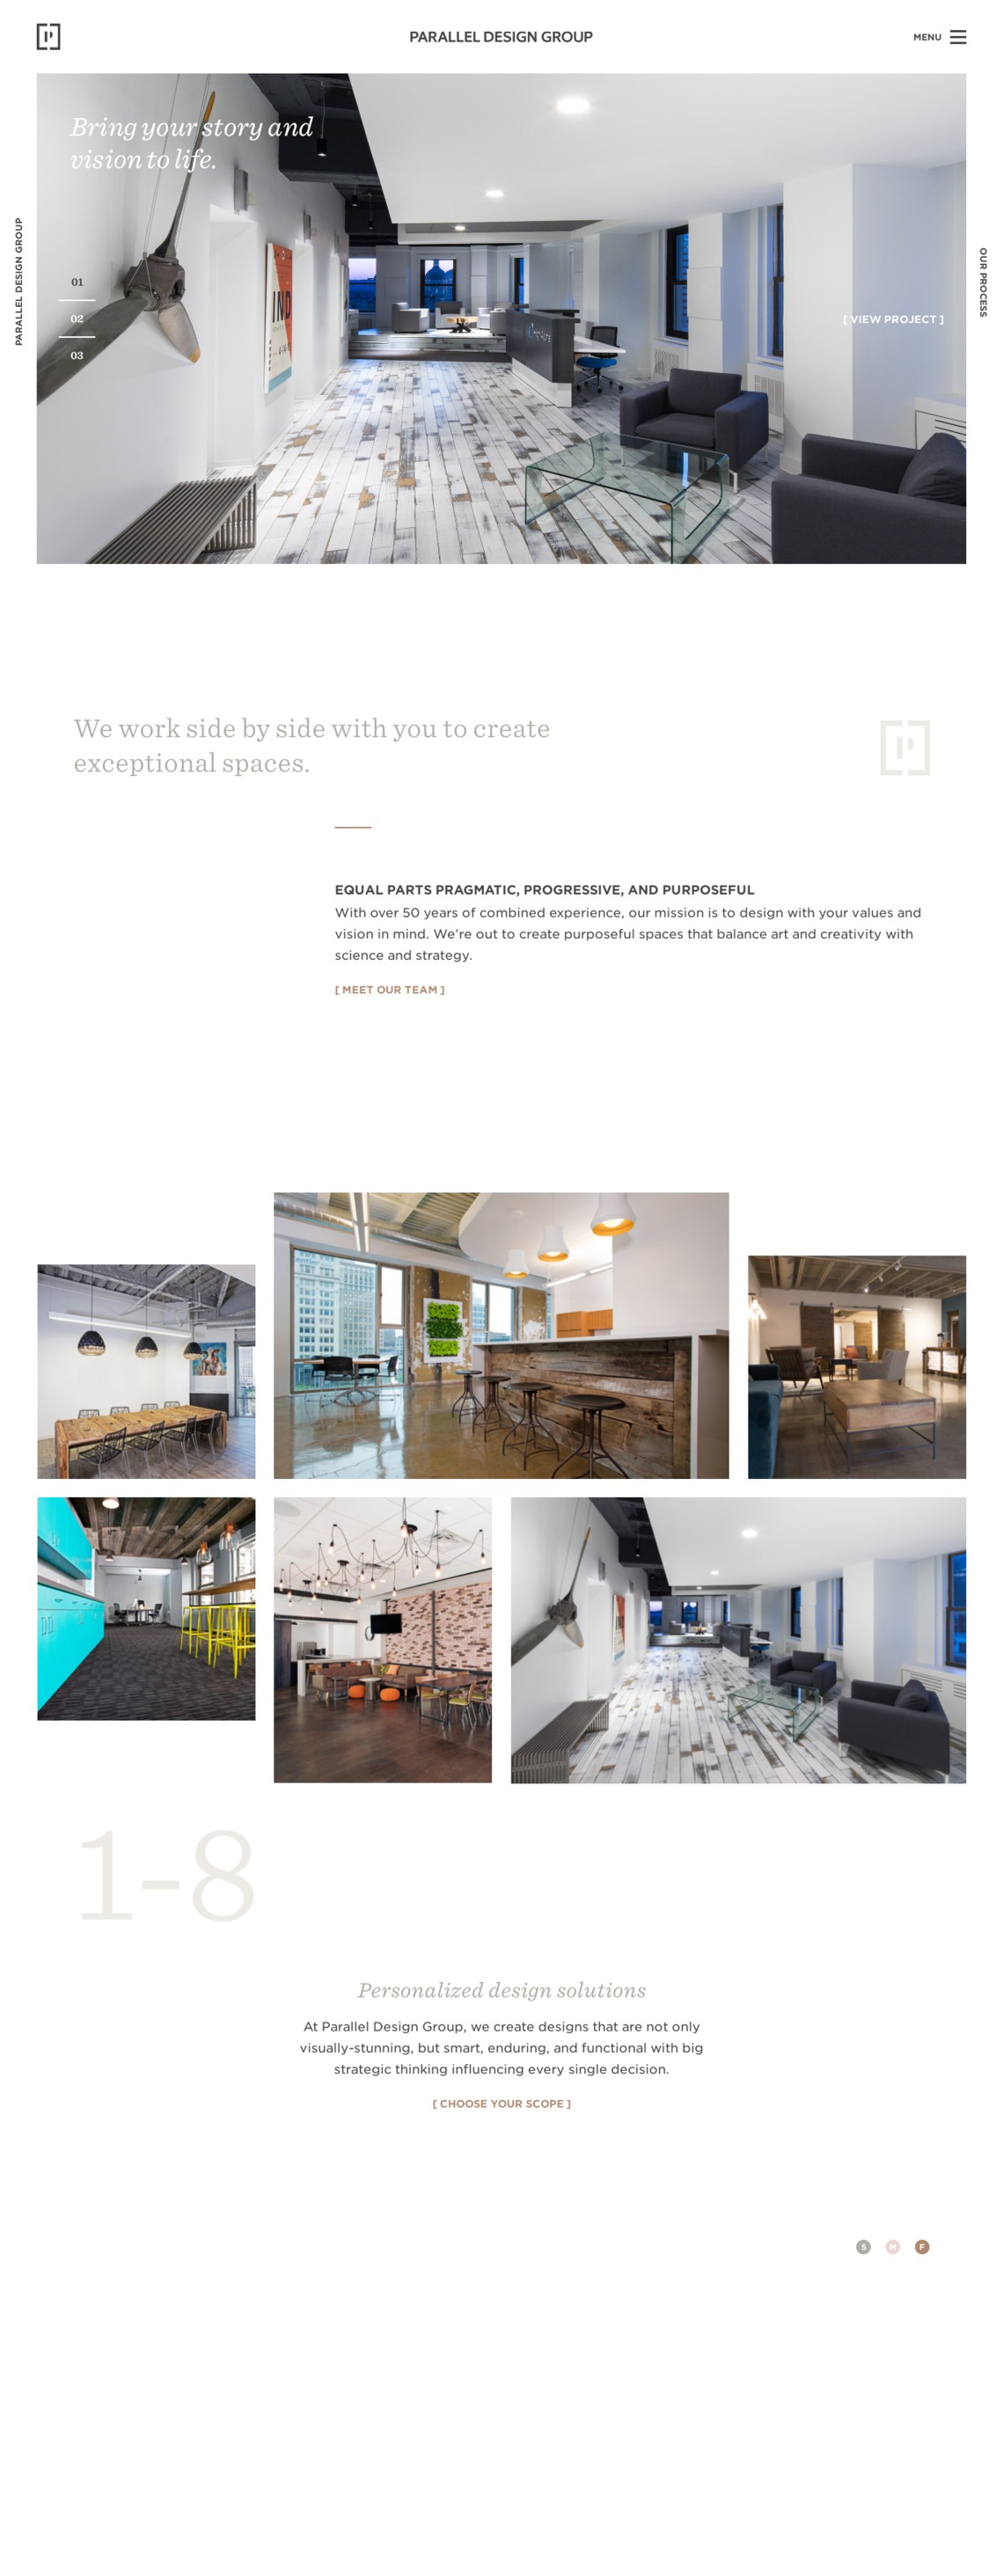 Parallel Design Group | Indianapolis Commercial Interior Design Firm